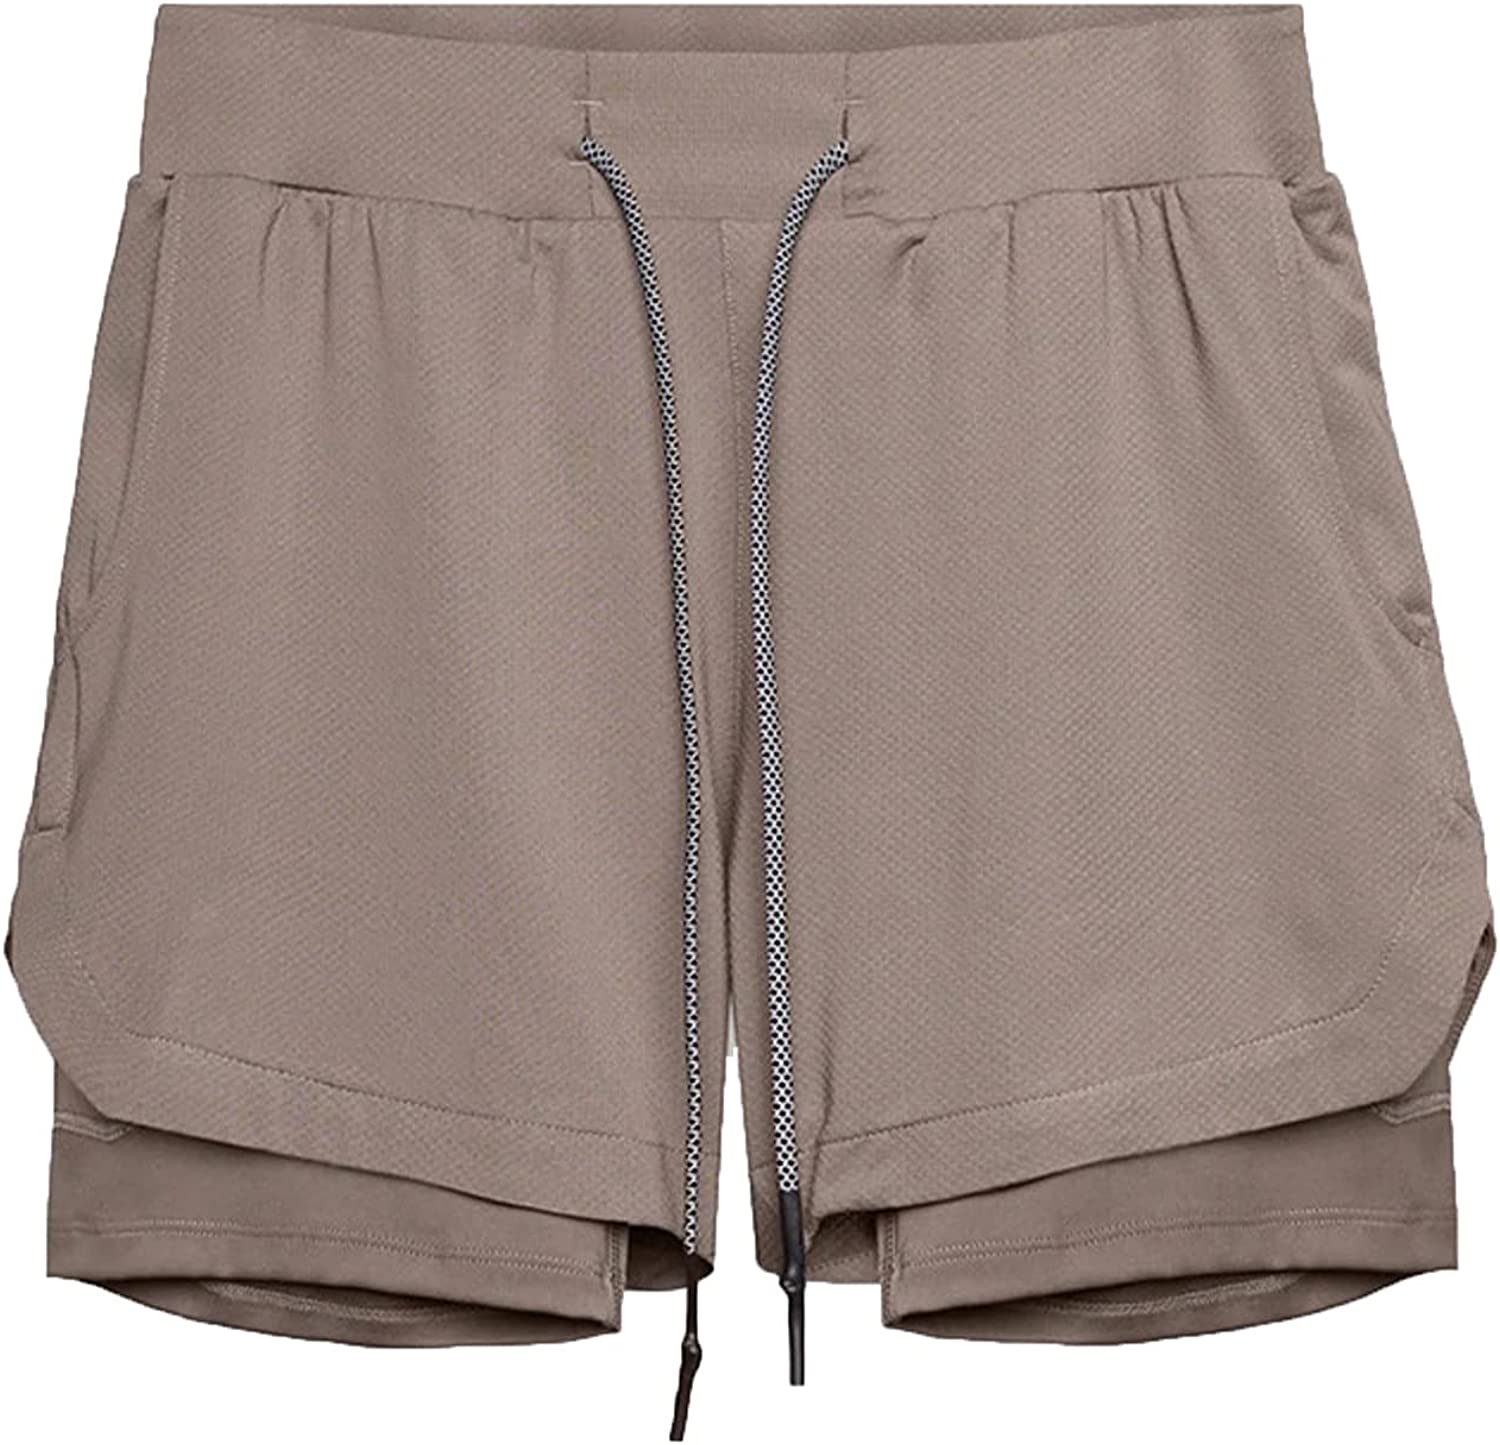 ZCAITIANYA Men's Shorts Casual Quick Dry Slim Fit Double Layer with Lining Drawstring Summer Solid Elastic Waist with Pockets